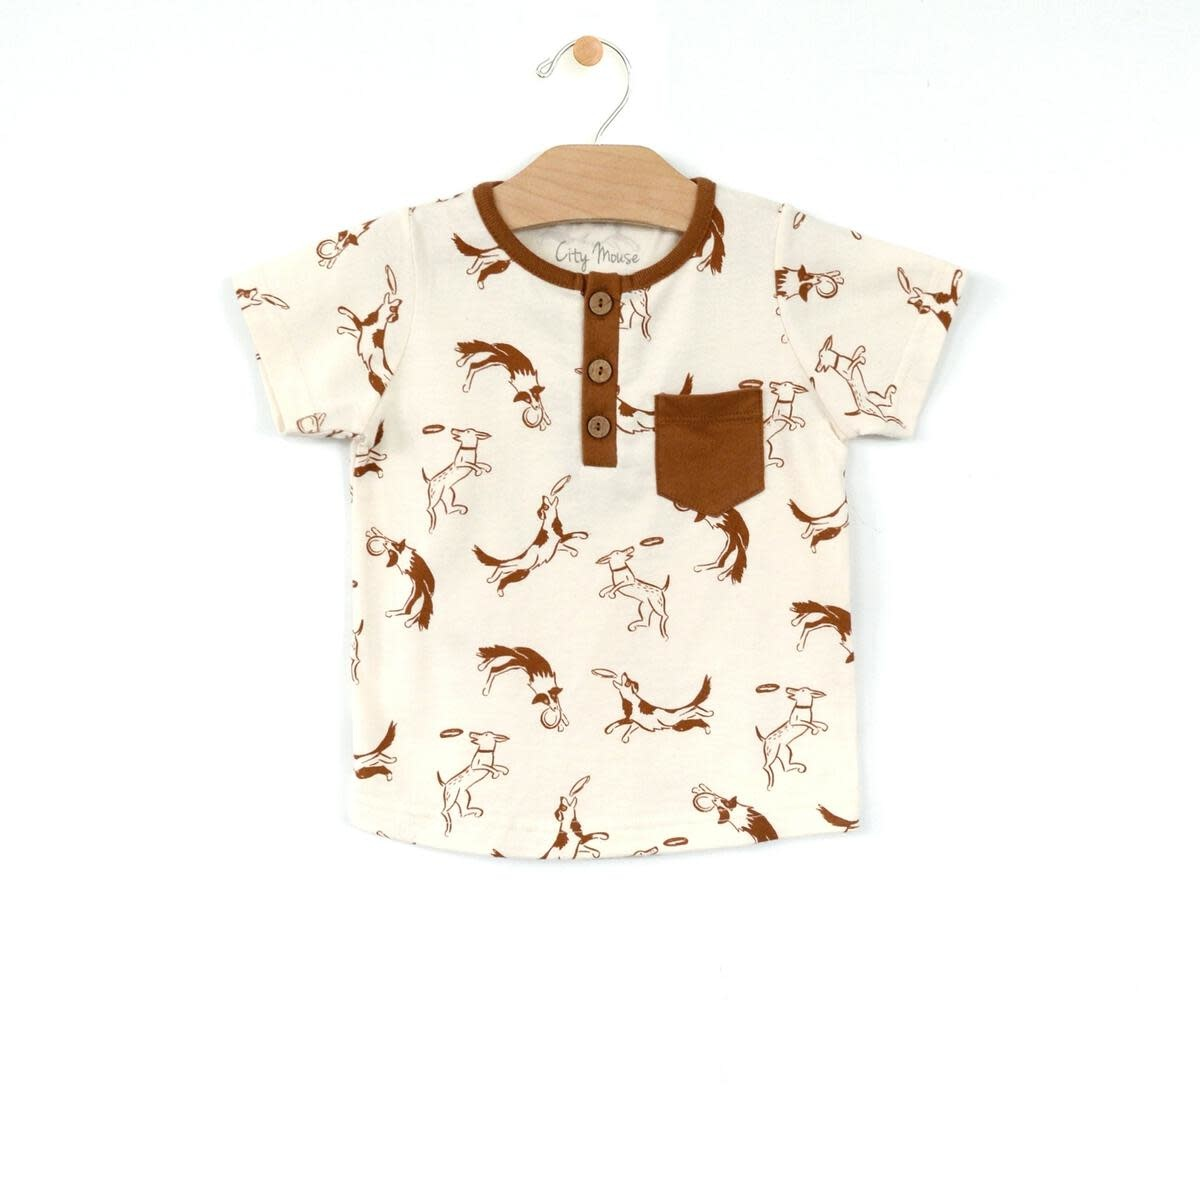 City Mouse Jersey Henley Pocket Tee - Dogs